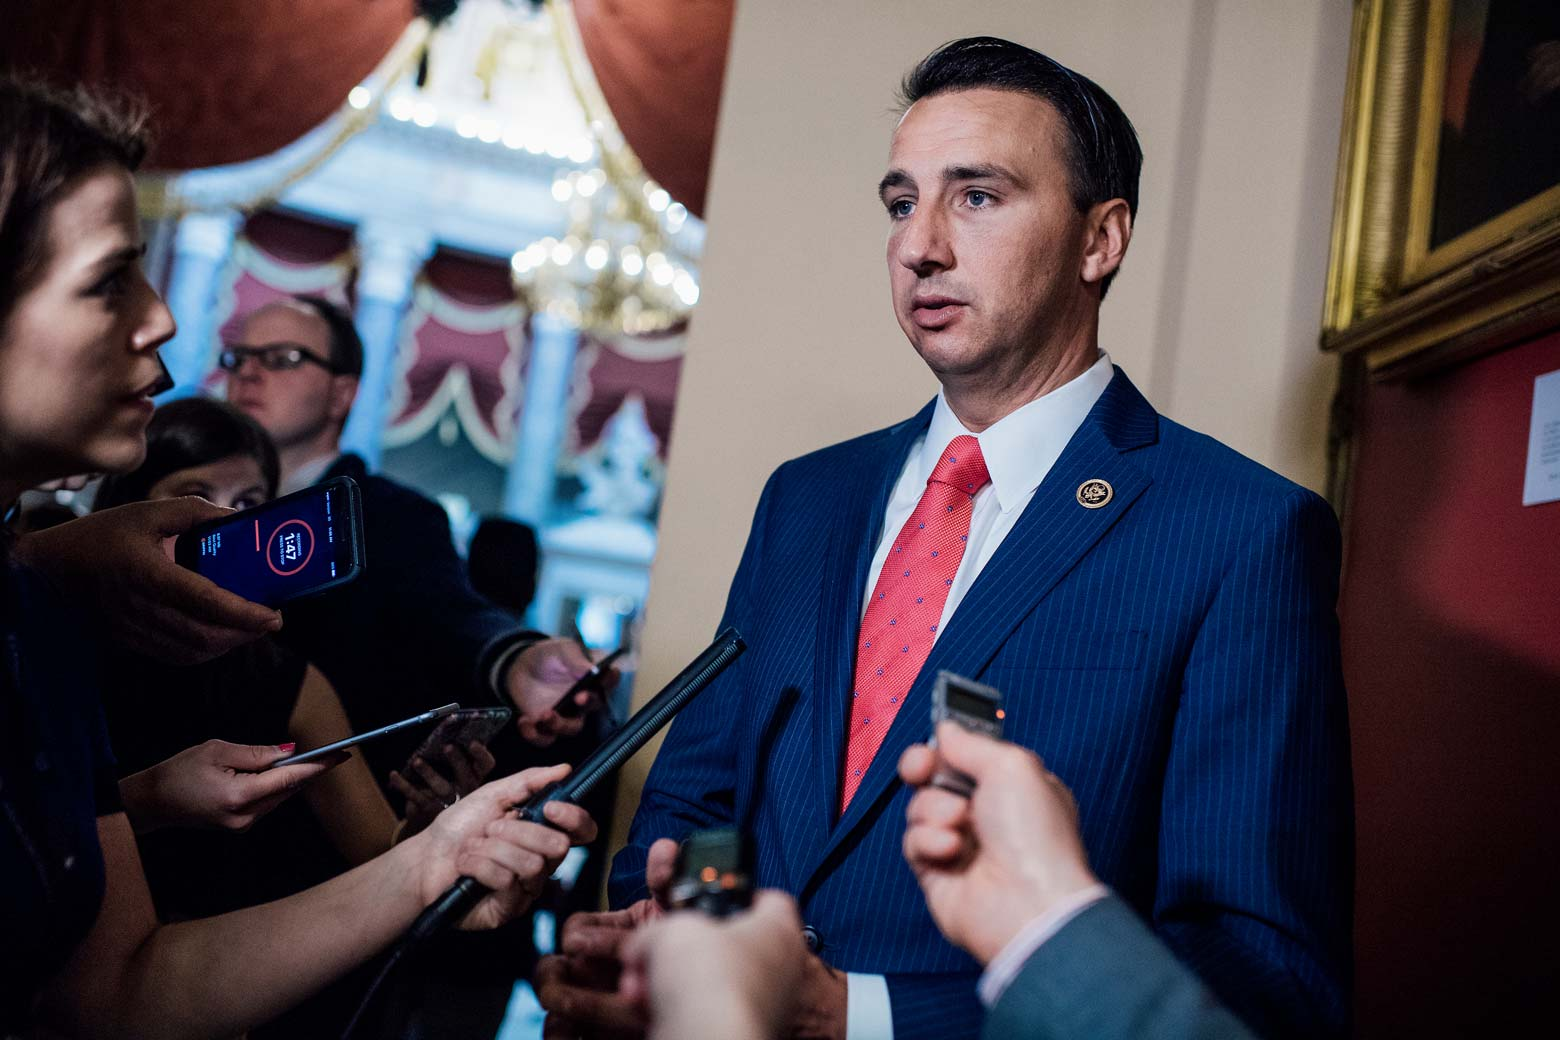 Rep. Ryan Costello, R-Pa., who missed practice this morning, talks with the media in the Capitol after a shooting at the Republican's baseball practice in Alexandria on June 14, 2017.